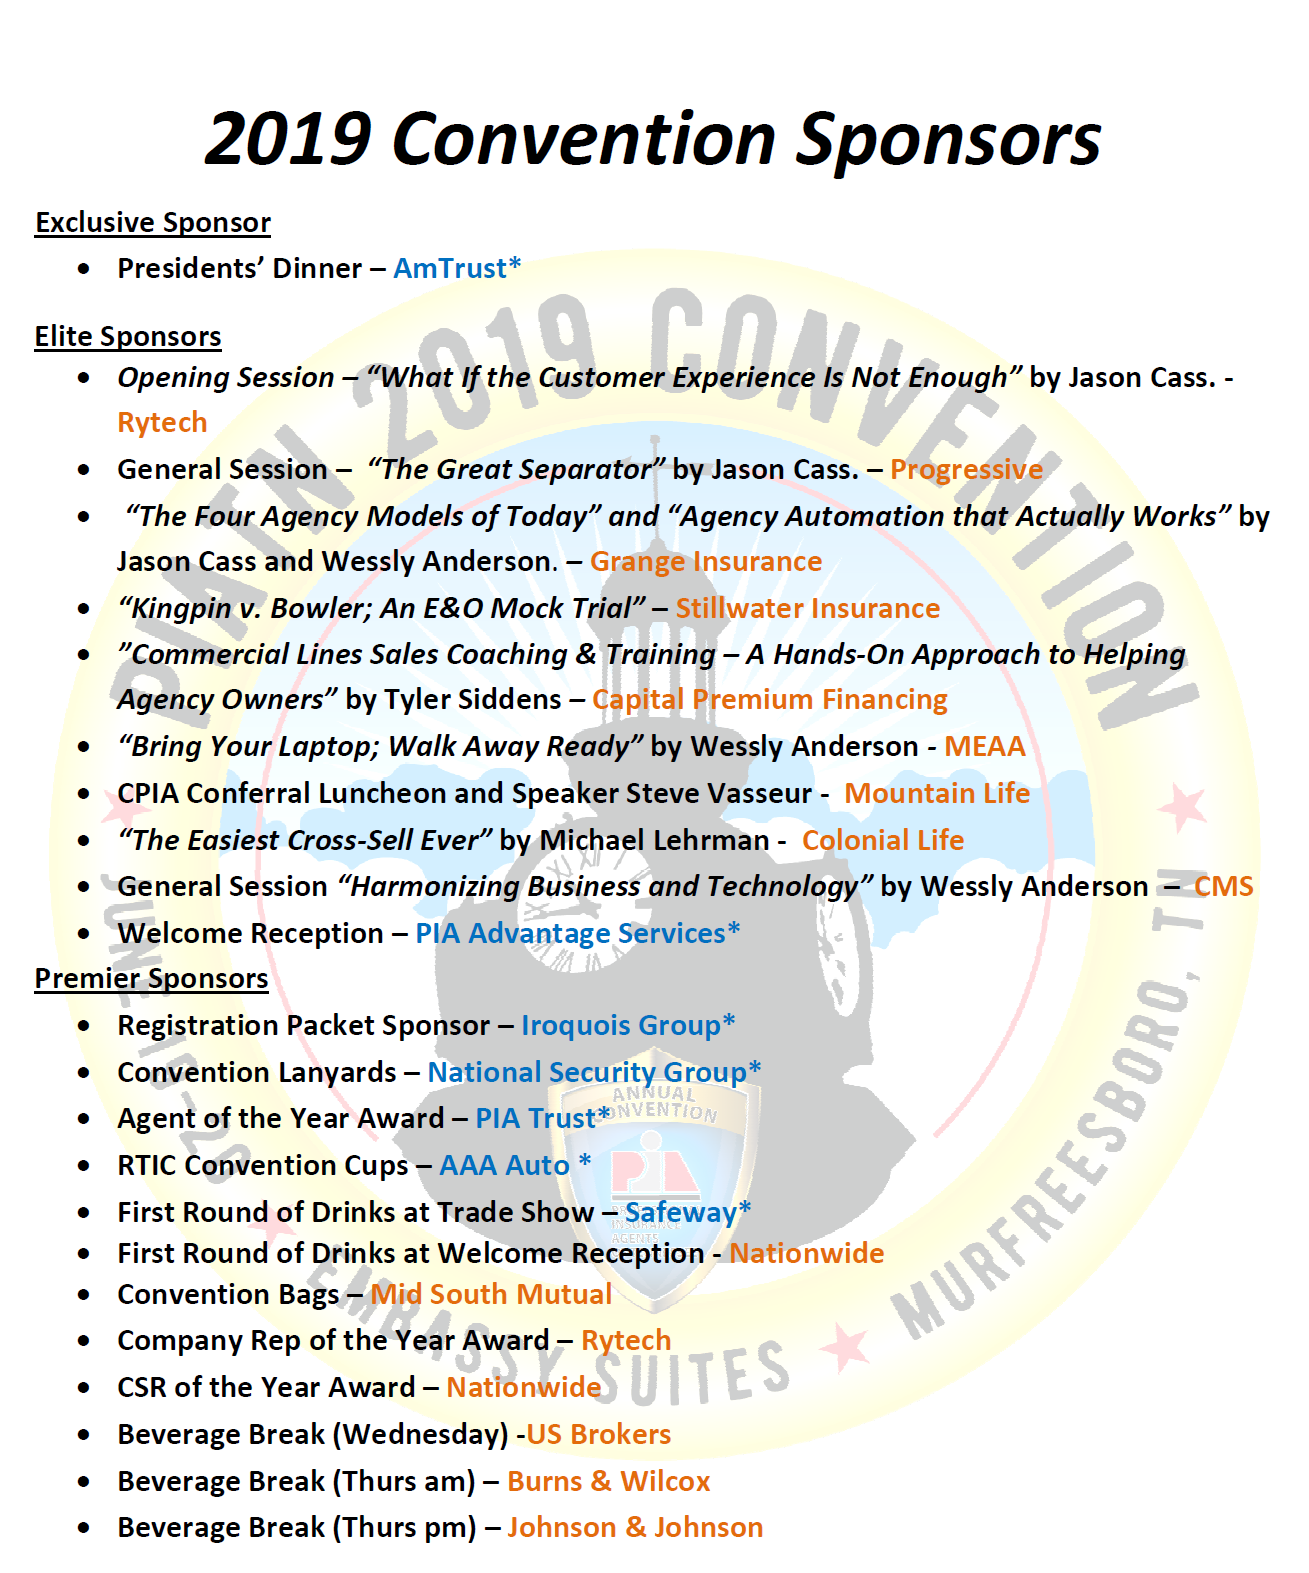 2019 Convention Sponsors.png